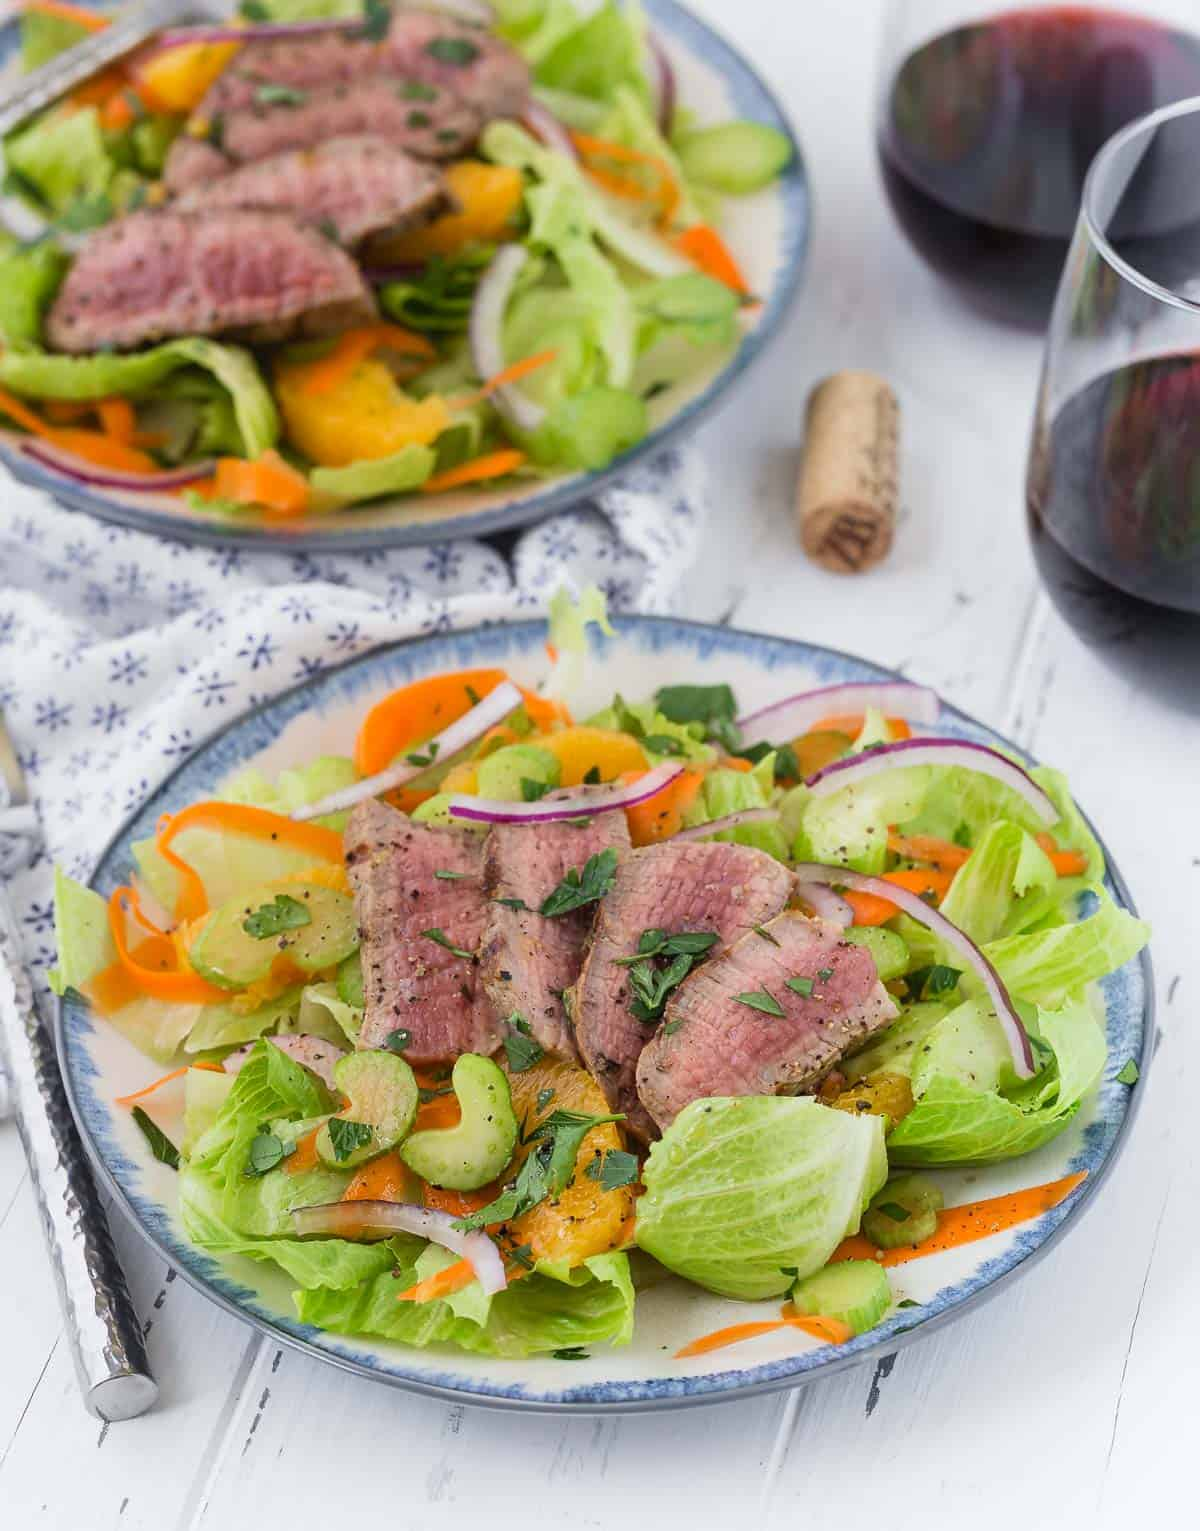 Green leaf lettuce salad topped with steak, oranges, and onion.